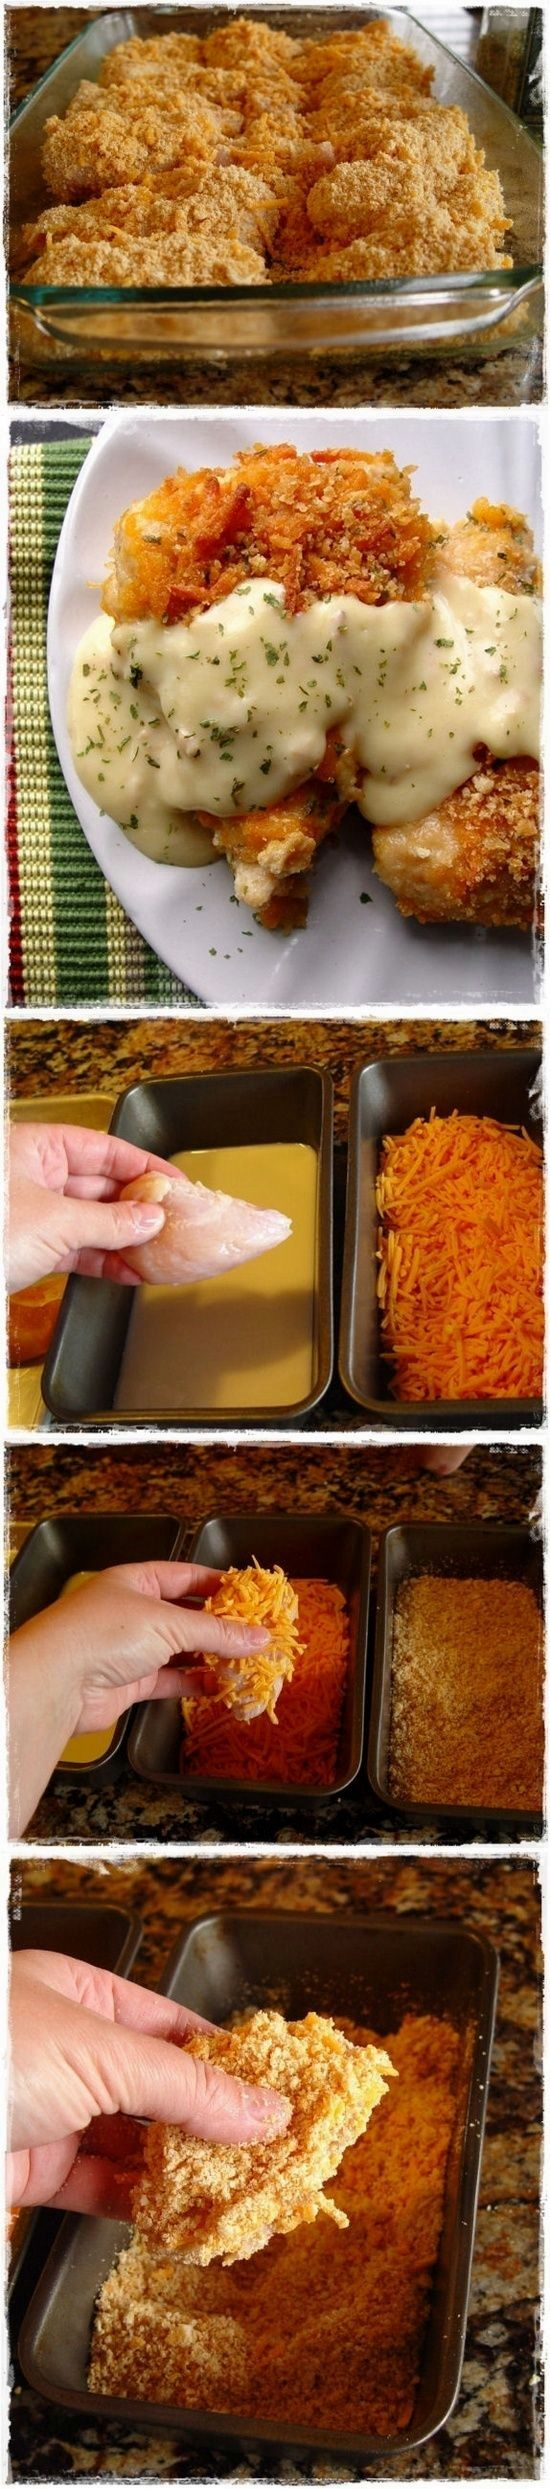 Crispy Cheddar Chicken.. Most Favorite Recipe I've Found On Pinterest!